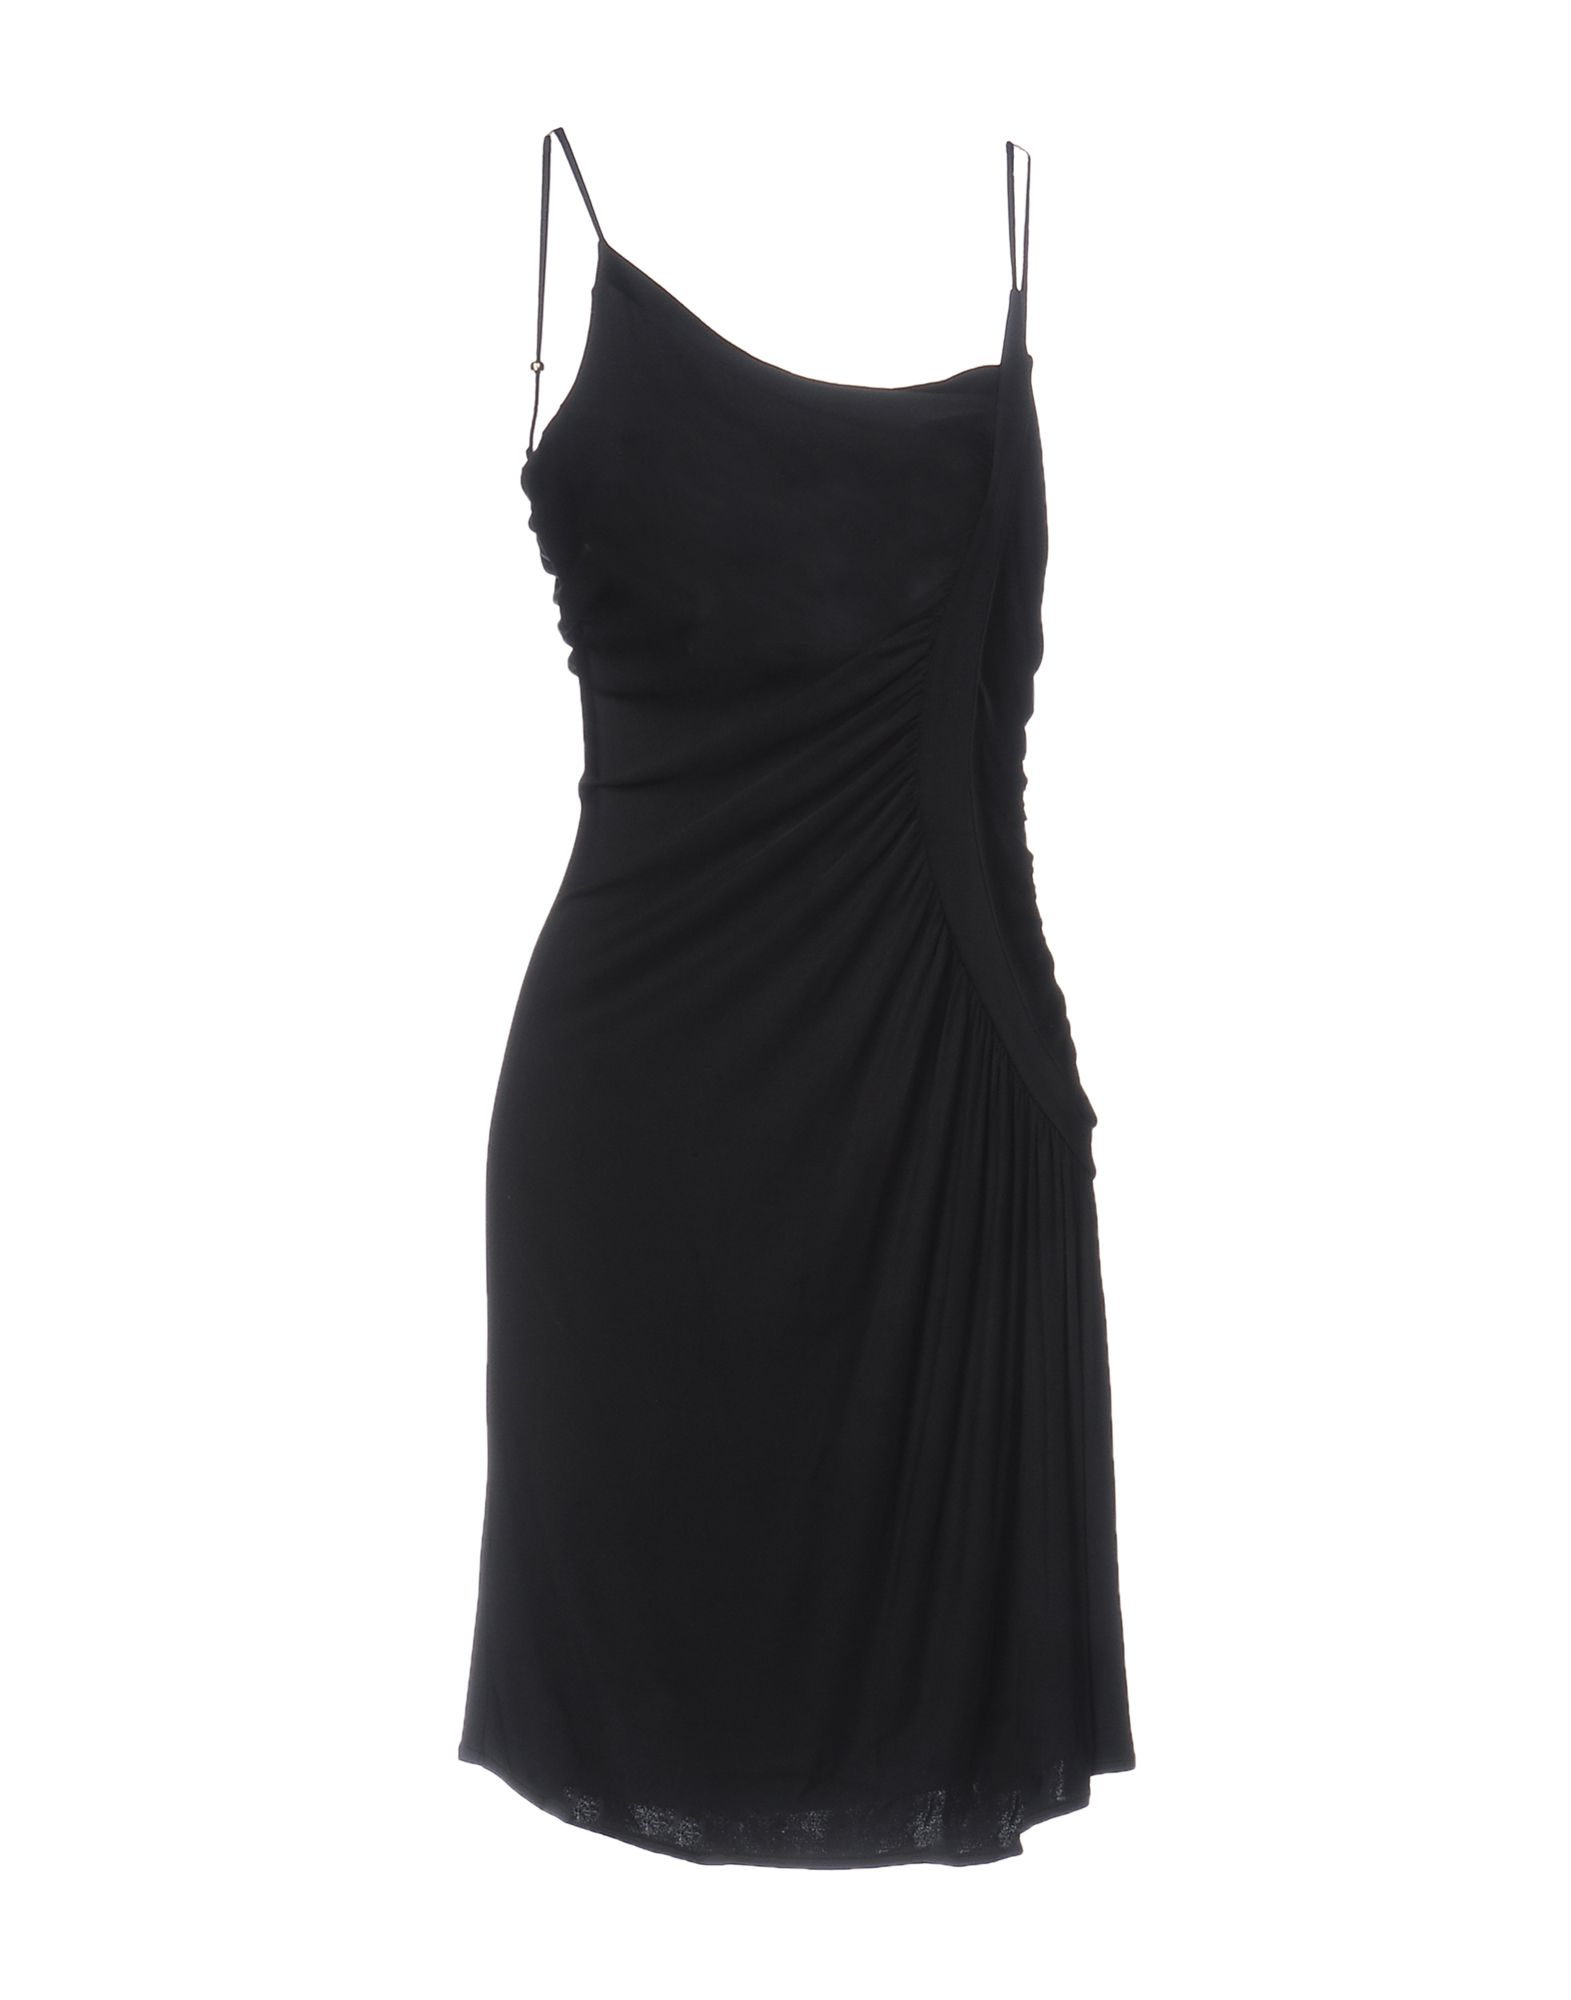 GUESS BY MARCIANO Платье до колена платье marciano guess 74g80k 5355z a996